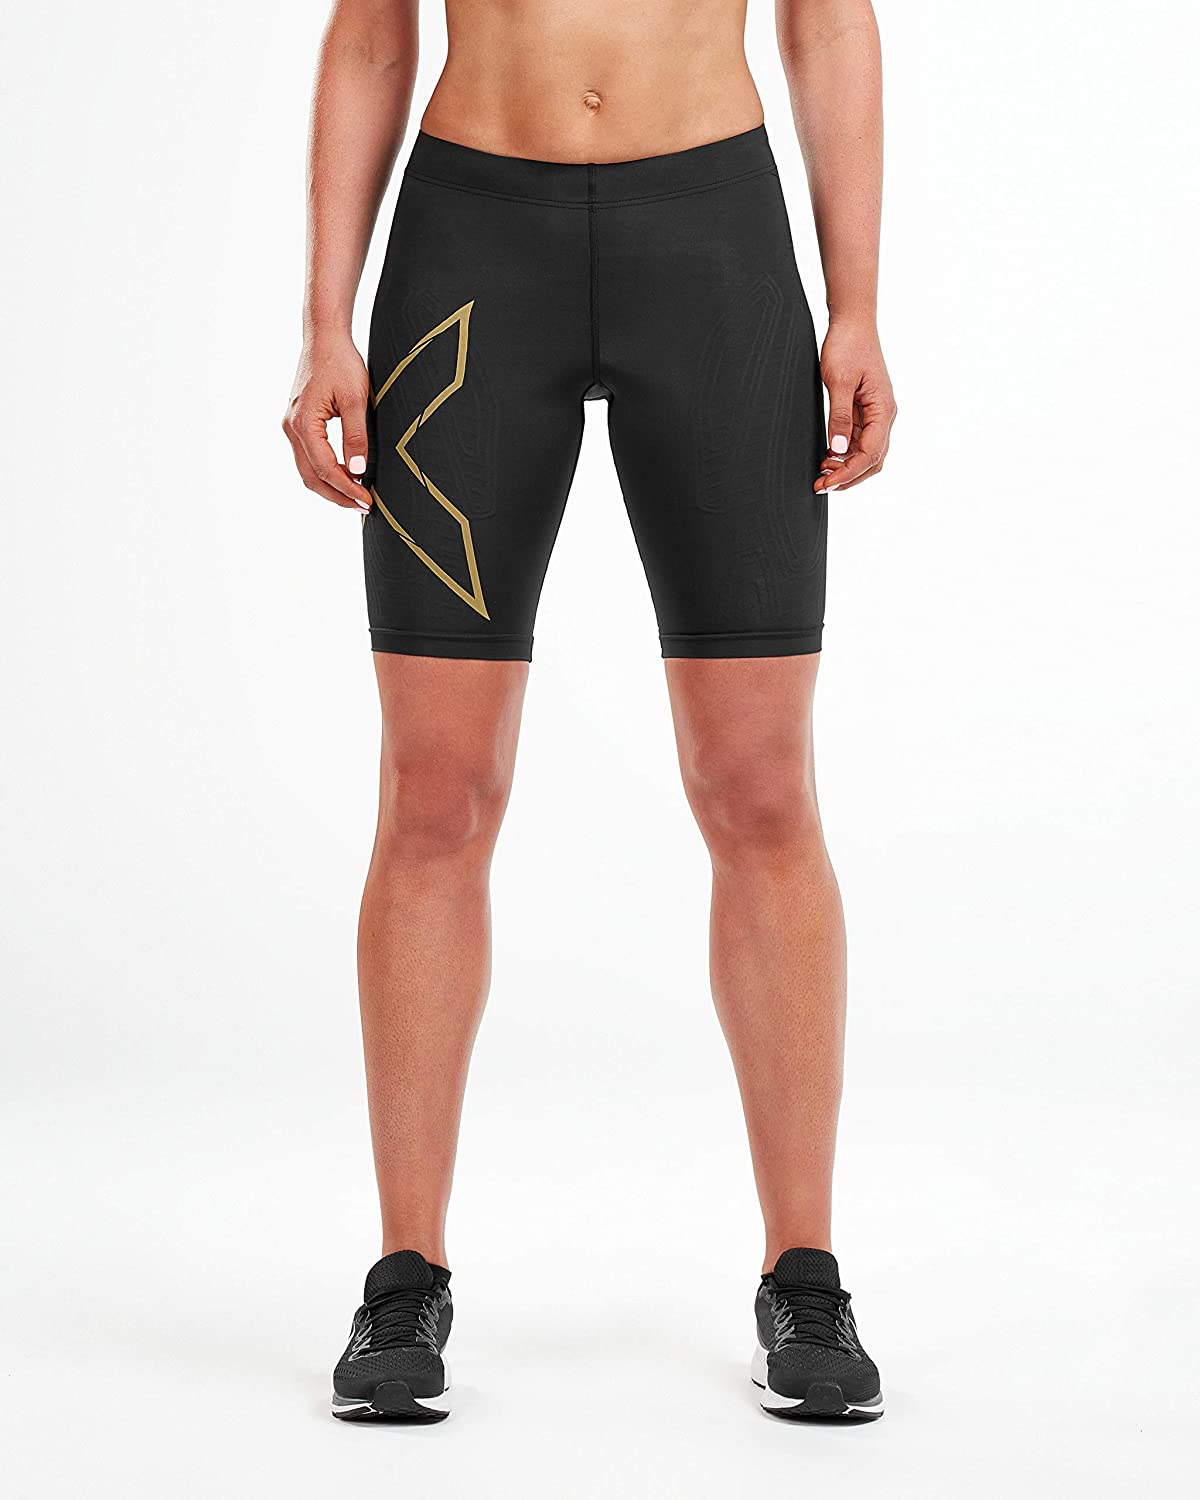 2XU Damen MCS Run Compression Shorts Wa5334b Strumpfhose